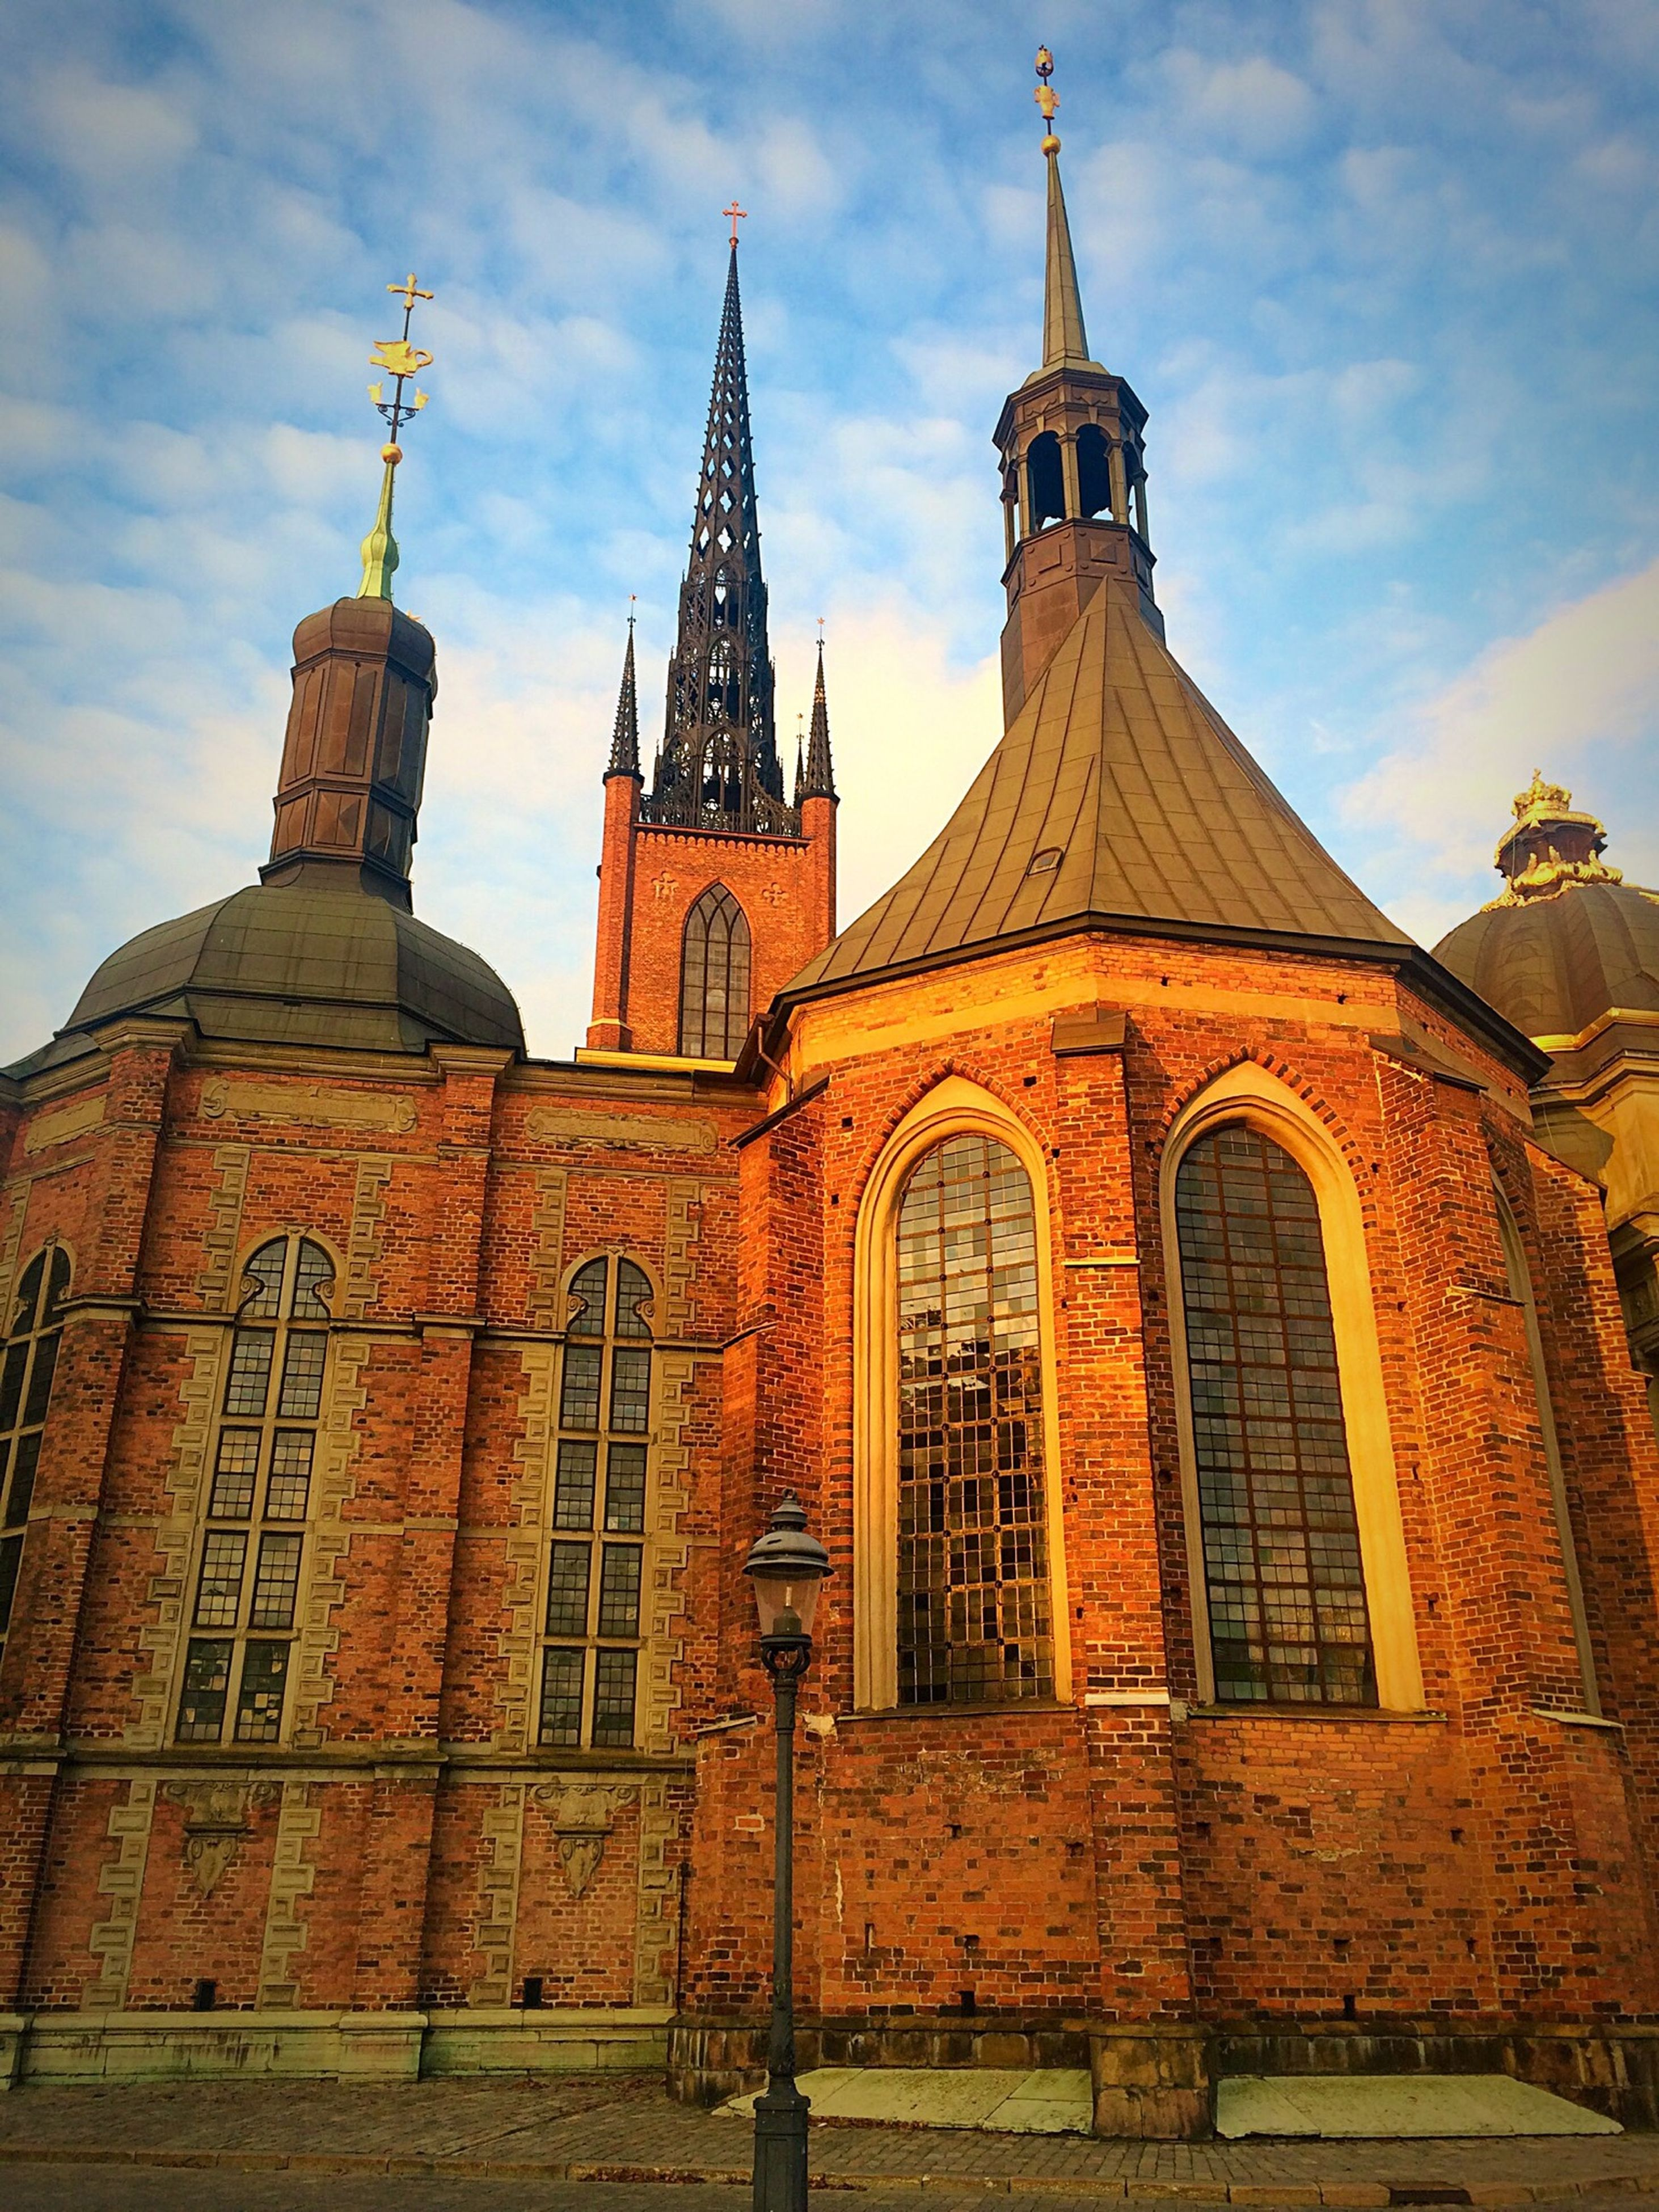 building exterior, architecture, built structure, place of worship, religion, low angle view, church, spirituality, sky, cathedral, cloud, cloud - sky, window, day, outdoors, dome, no people, cross